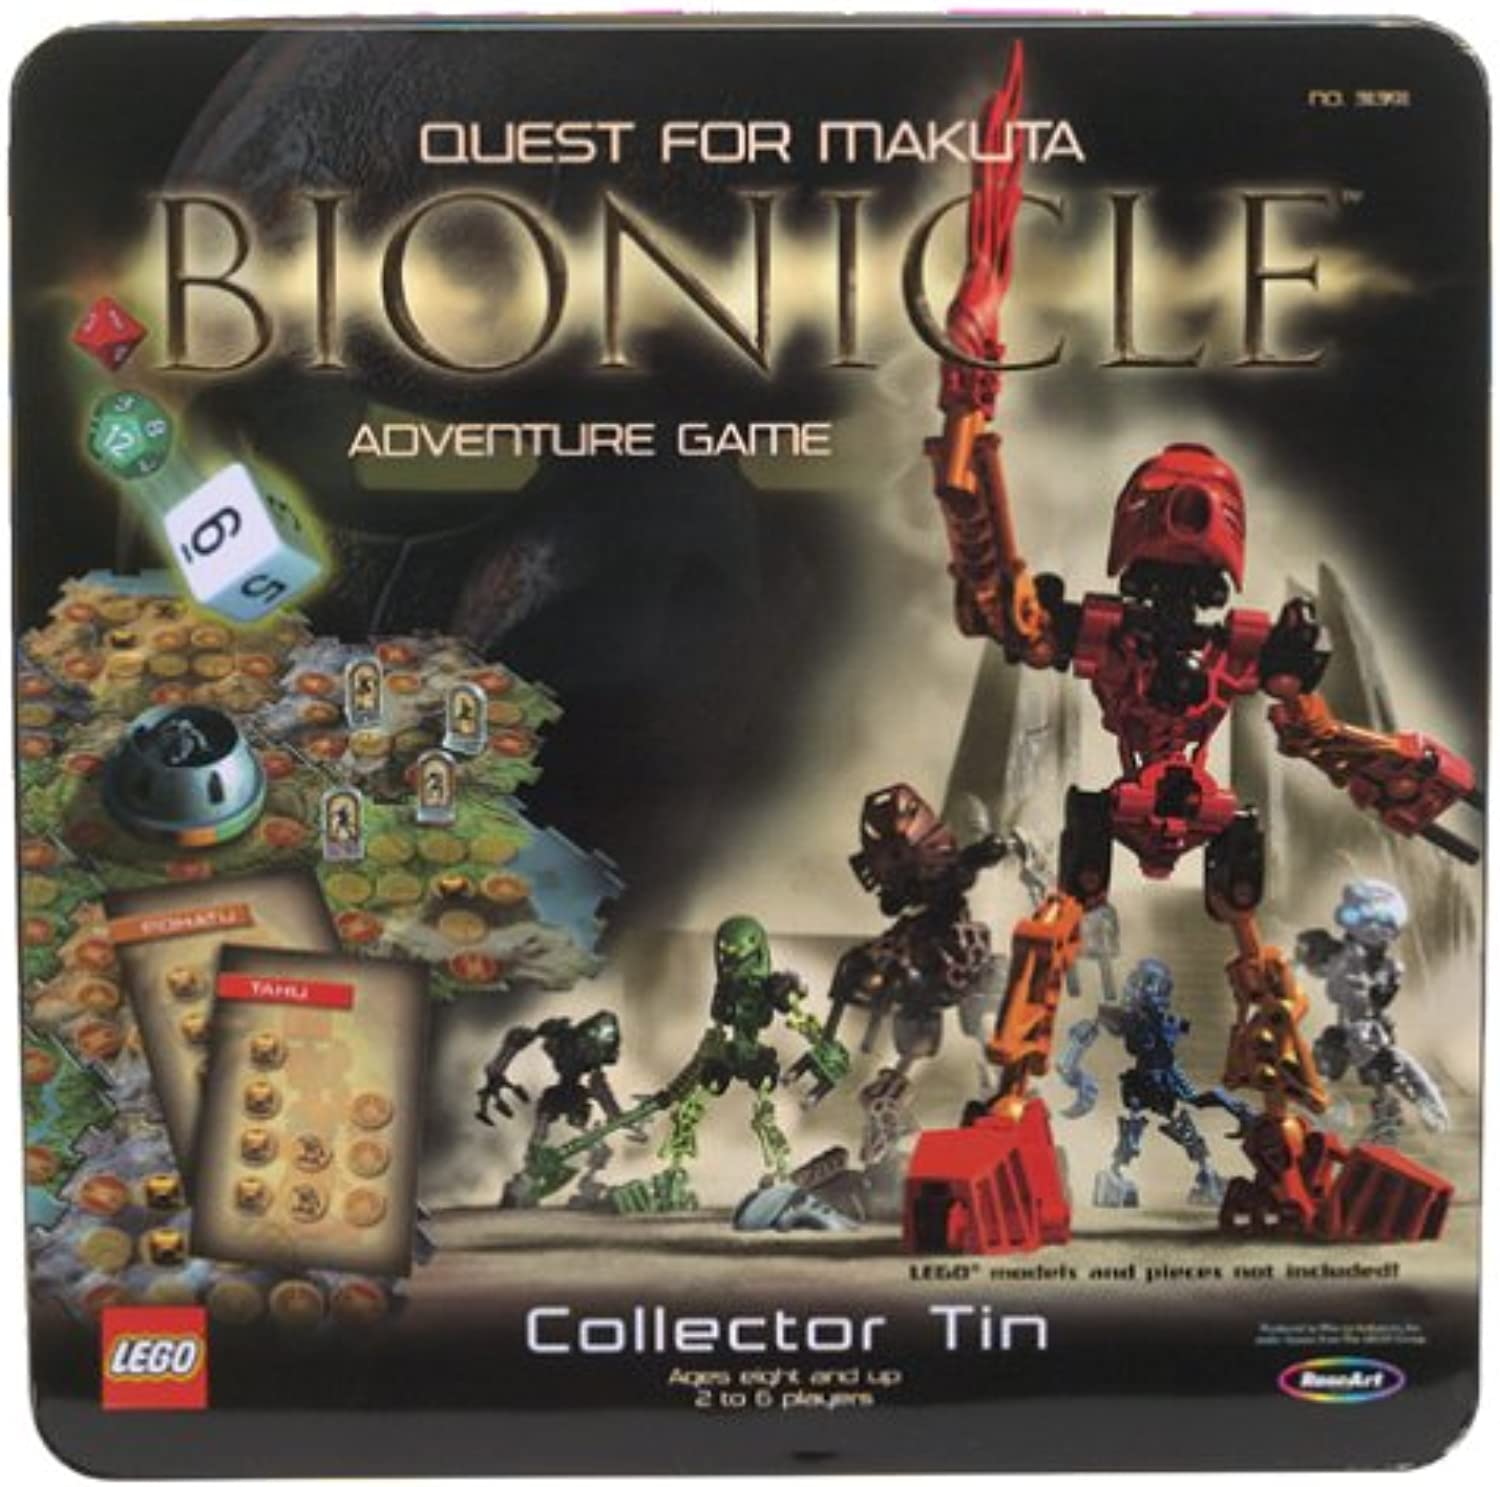 LEGO 31391 Bionicle Quest for Makuta Adventure Game  Collector Tin